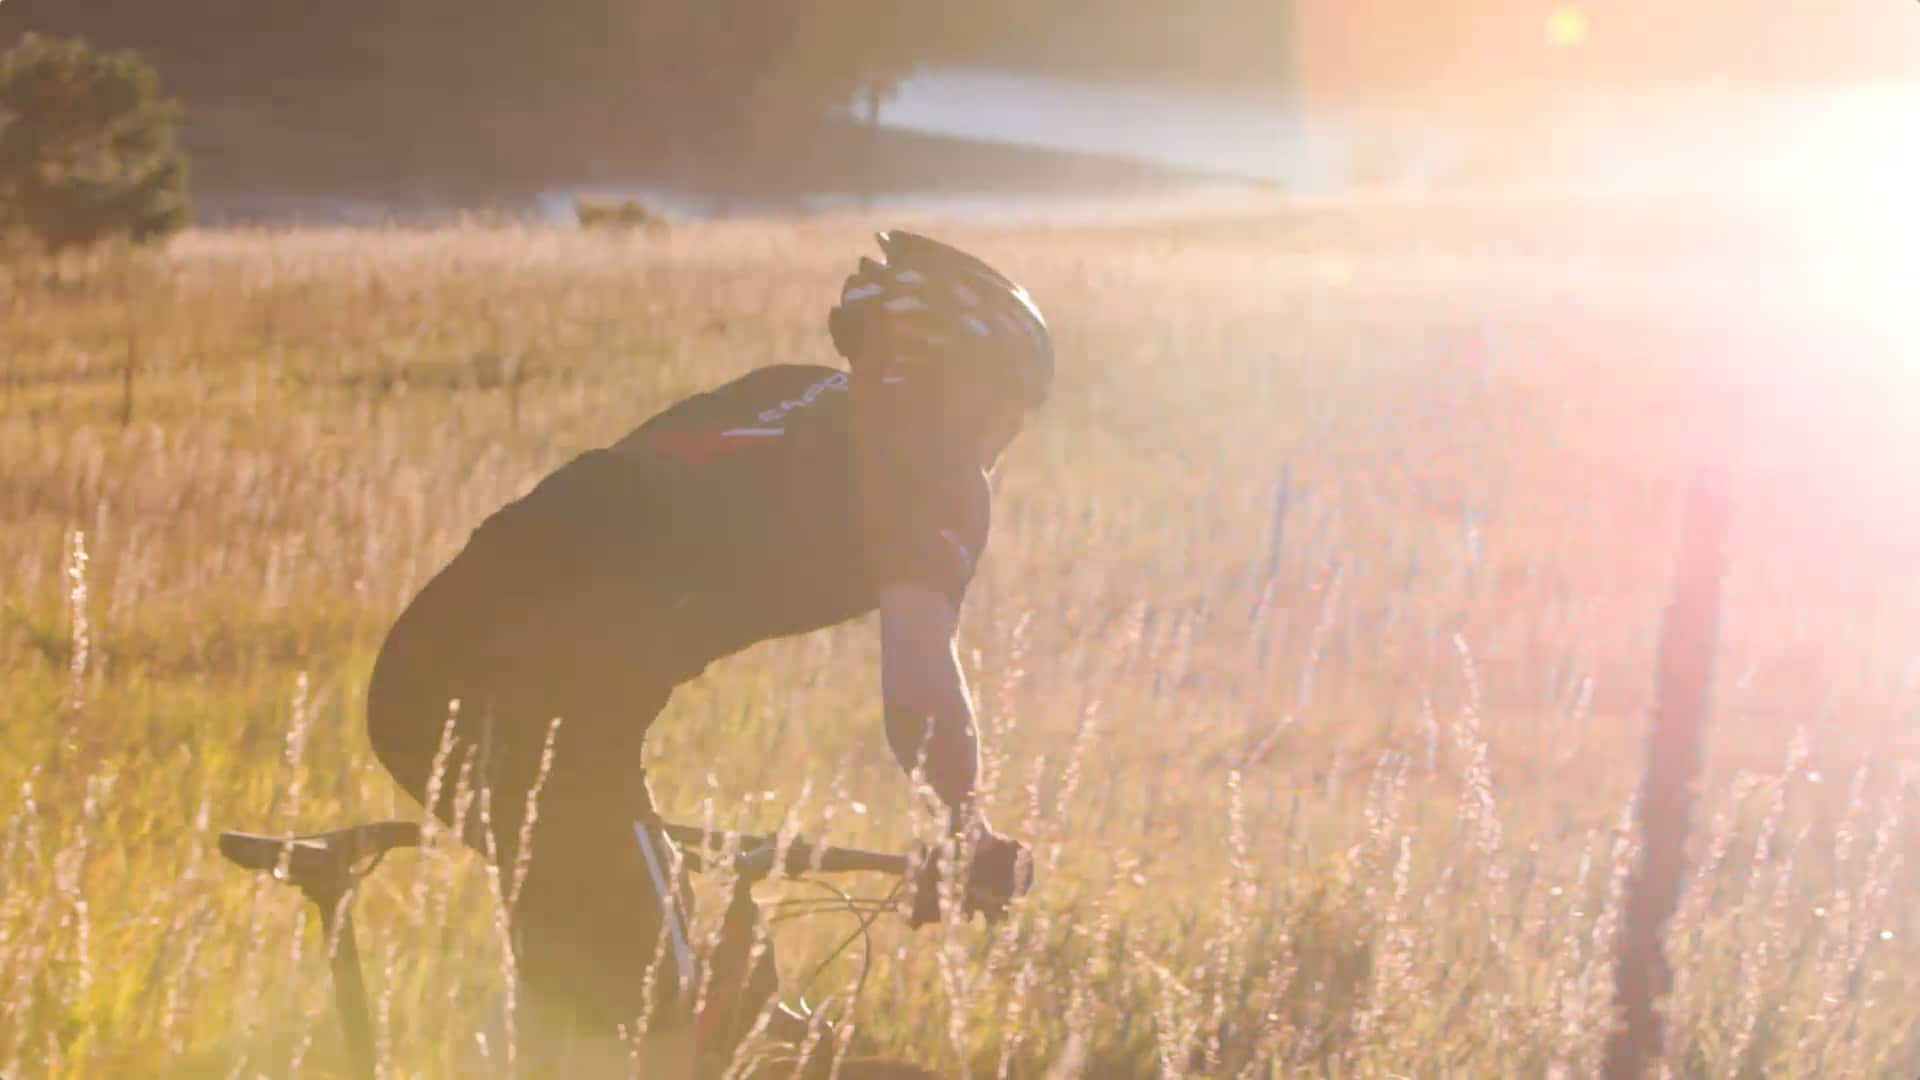 FedEx – Niner Bikes Online Video